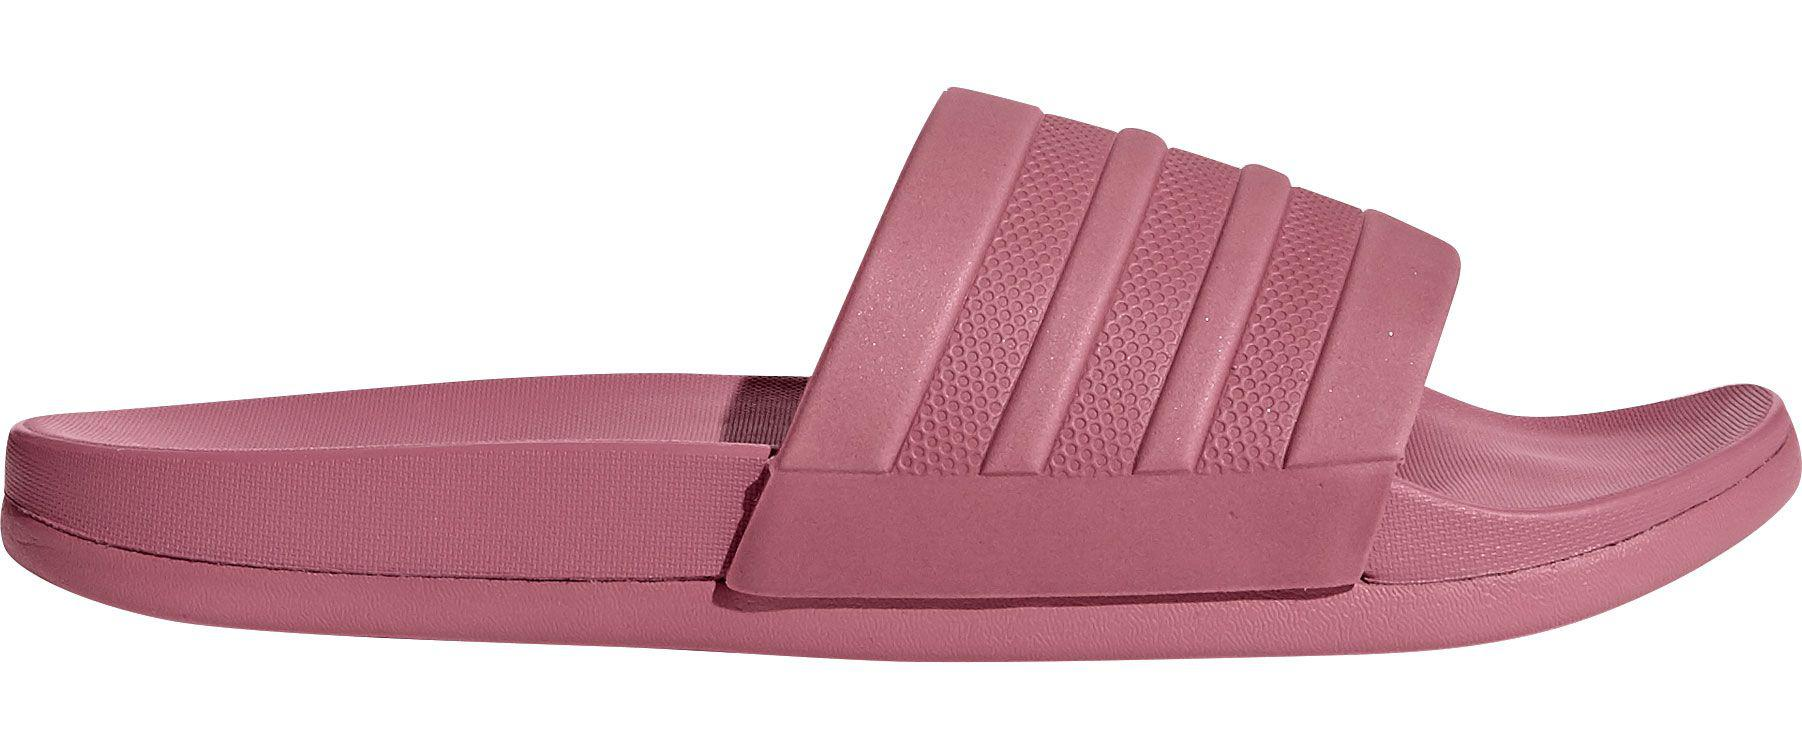 e92854359 Lyst - adidas Cloudfoam One Thong Sandals in Pink